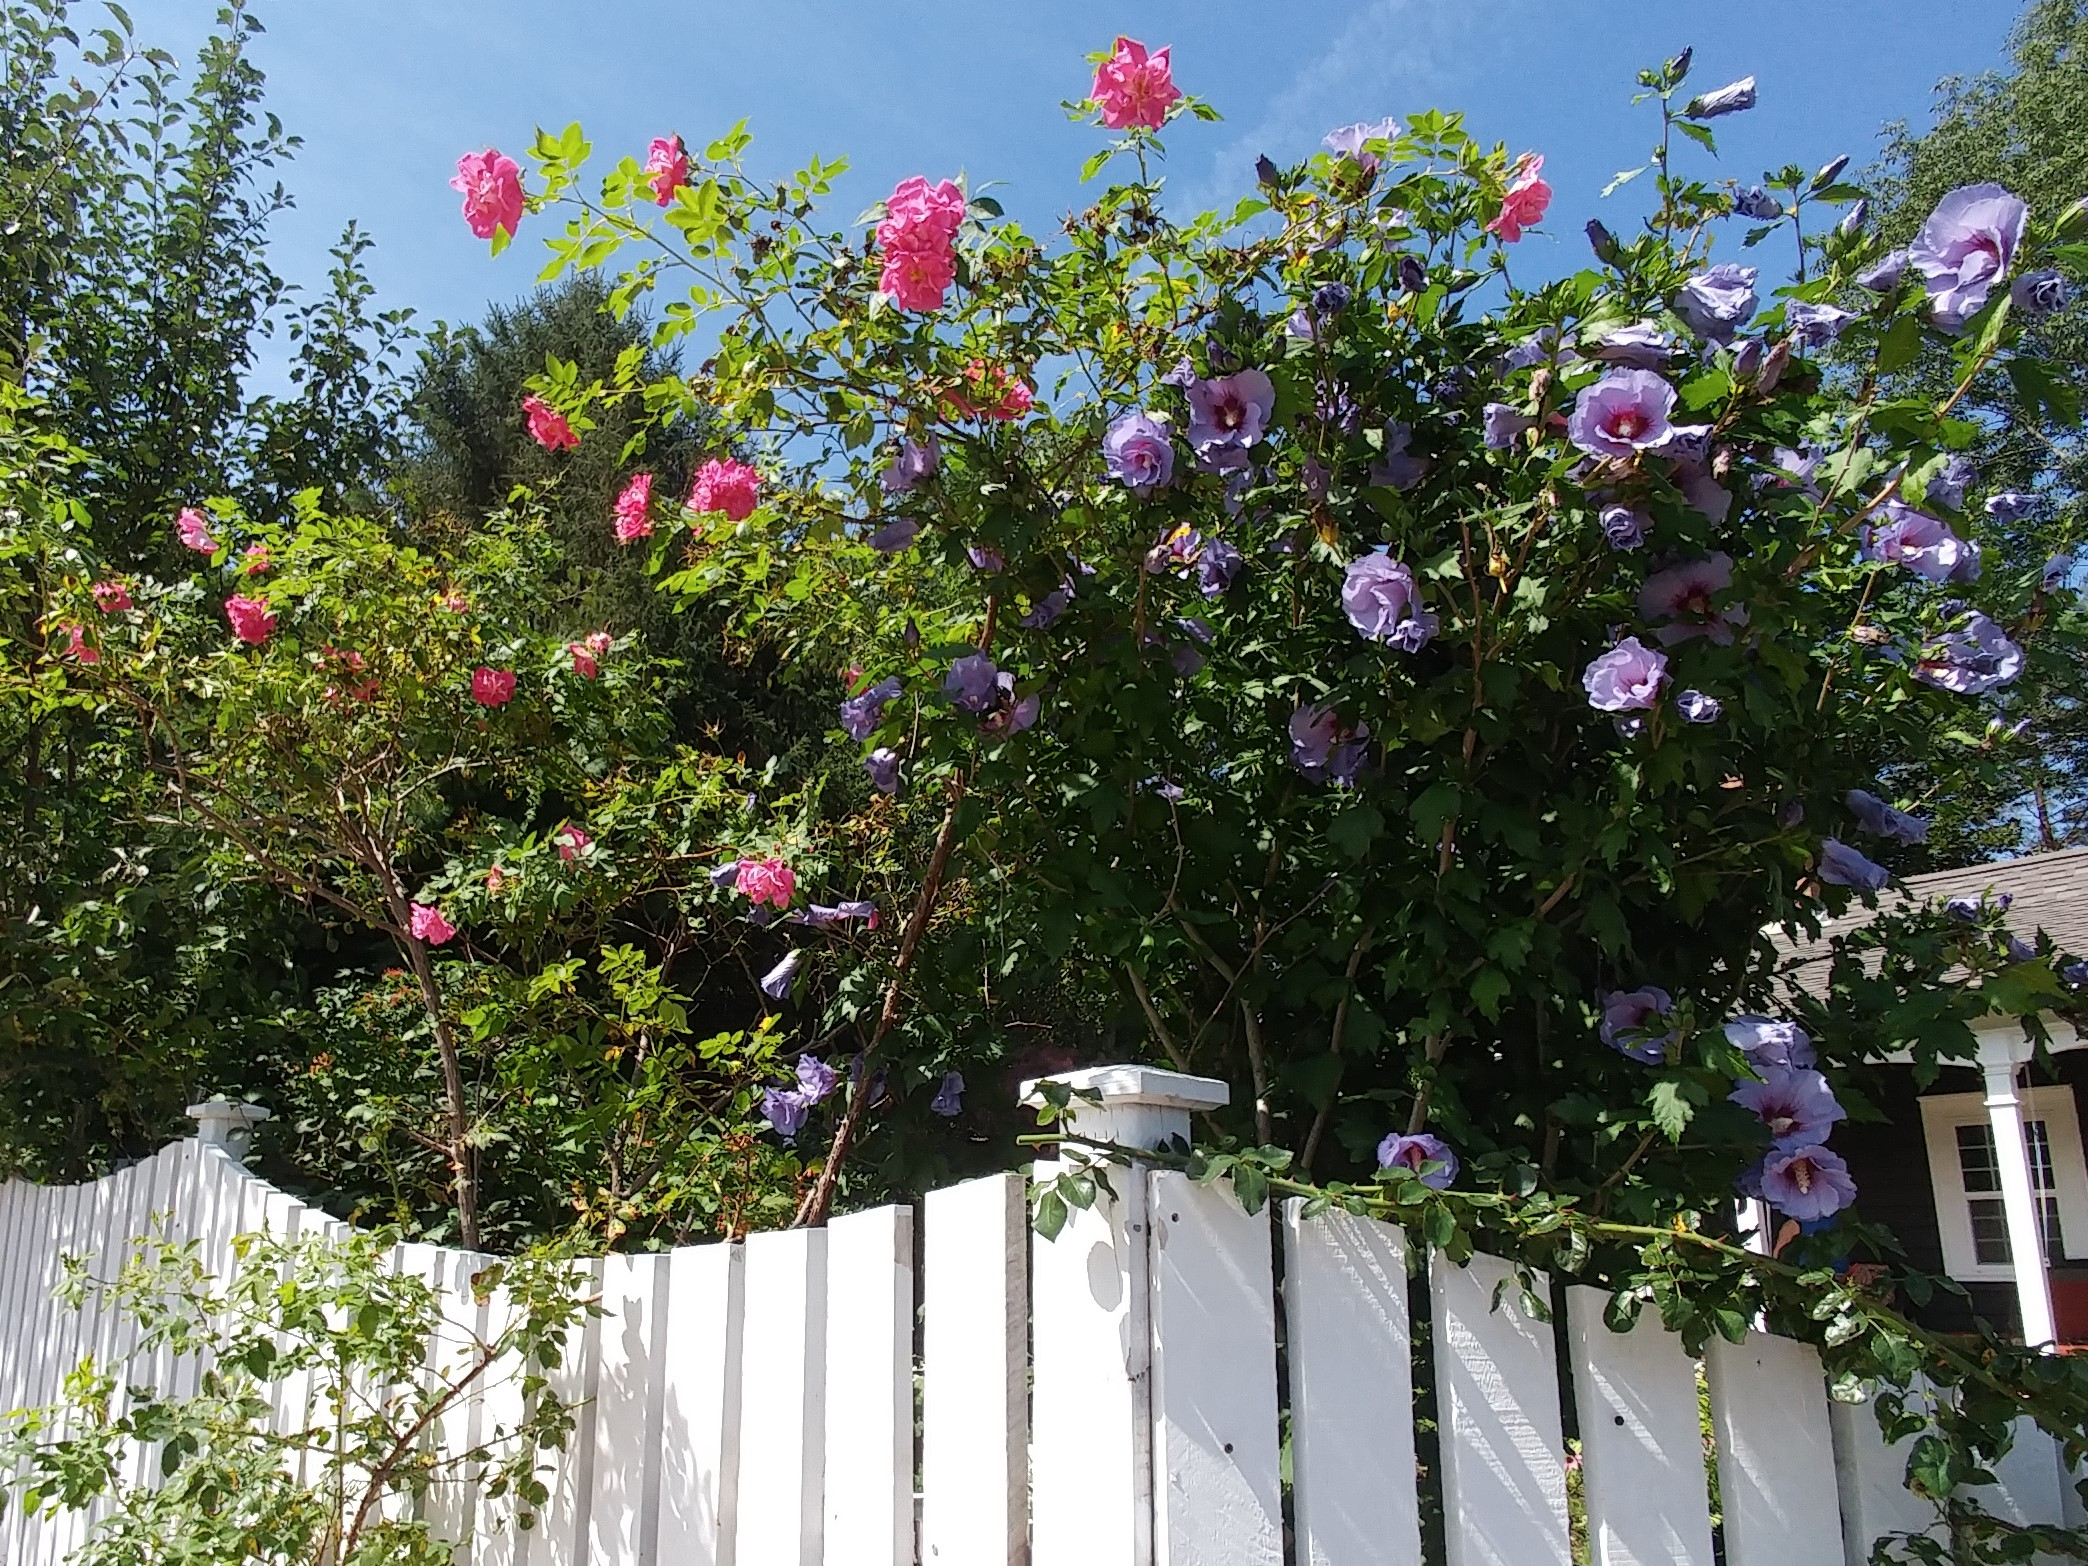 Climbing roses, rose-of-Sharon and a white picket fence offer old garden romance (Mahone Bay).